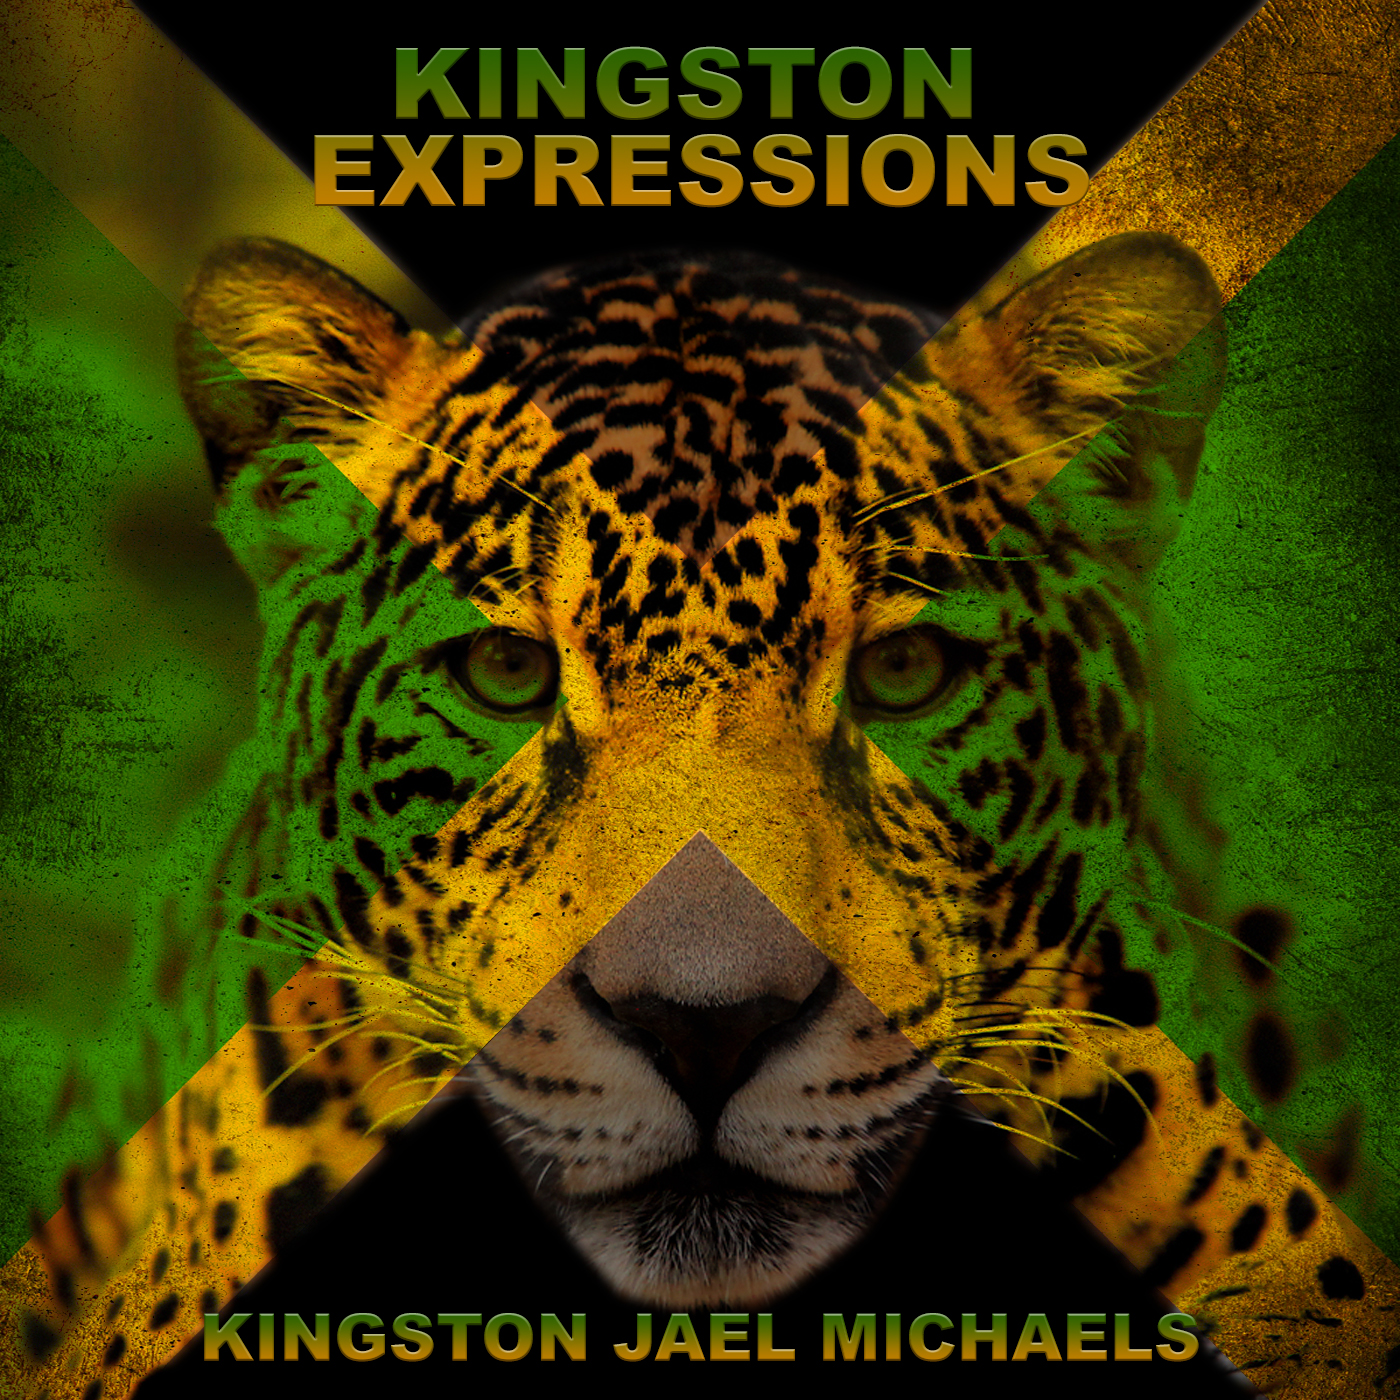 Kingston Expressions